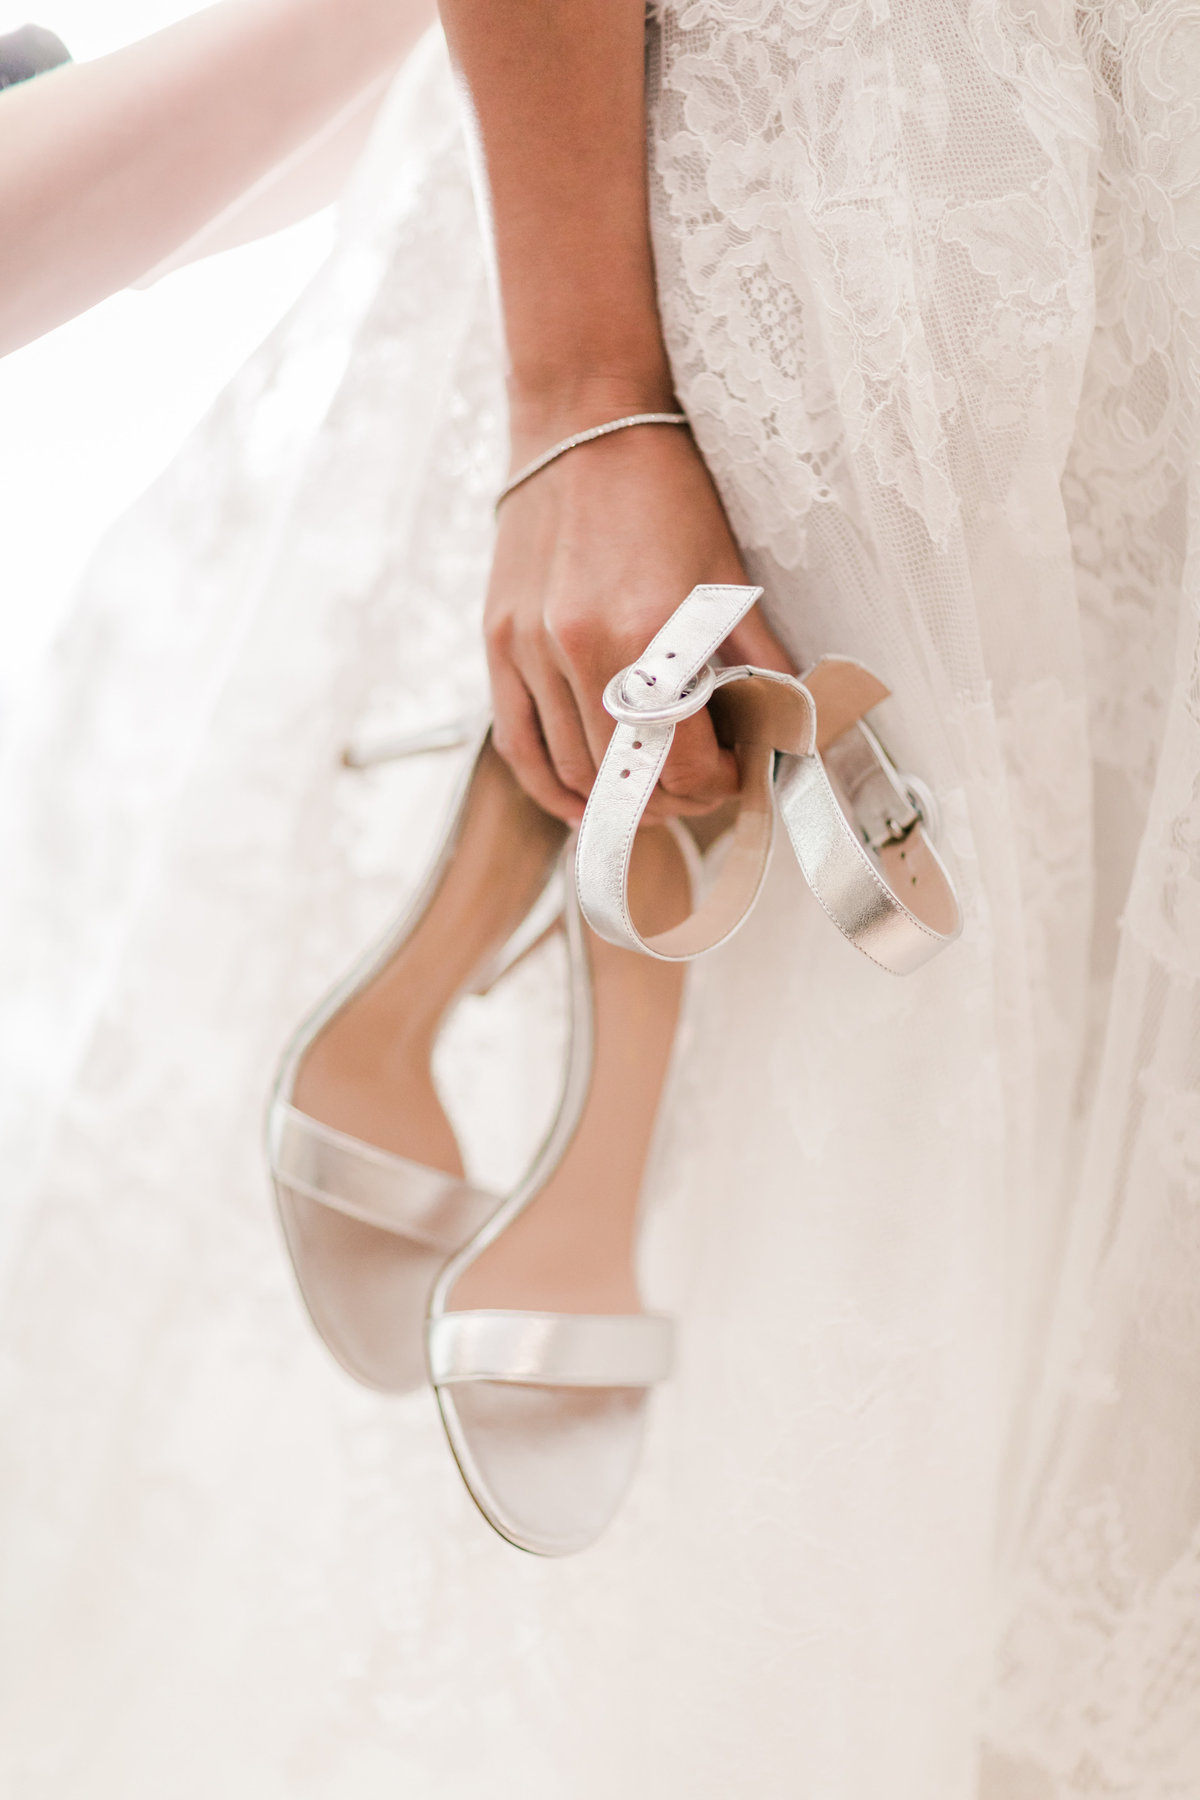 Malibu Private Estate Wedding_Valorie Darling Photography-7961